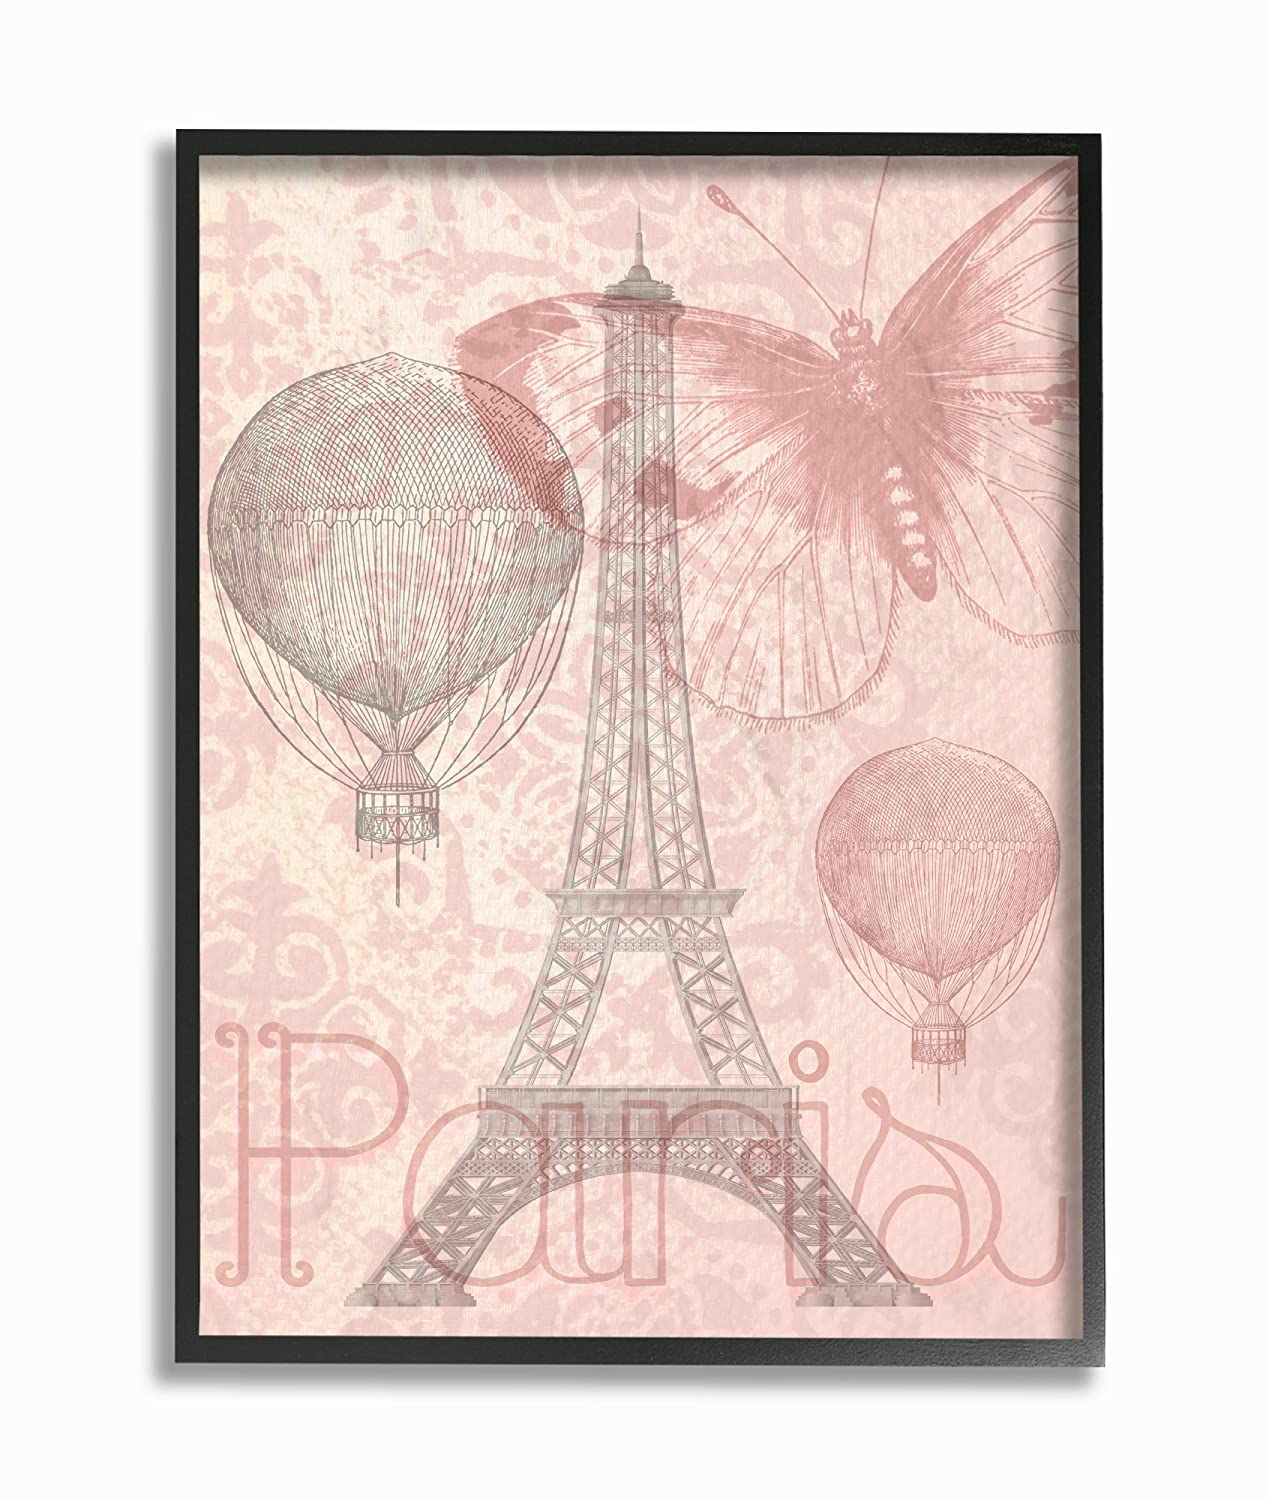 Stupell Industries Eiffel Tower Hot Air Balloon Paris Framed Giclee Texturized Art Proudly Made in USA